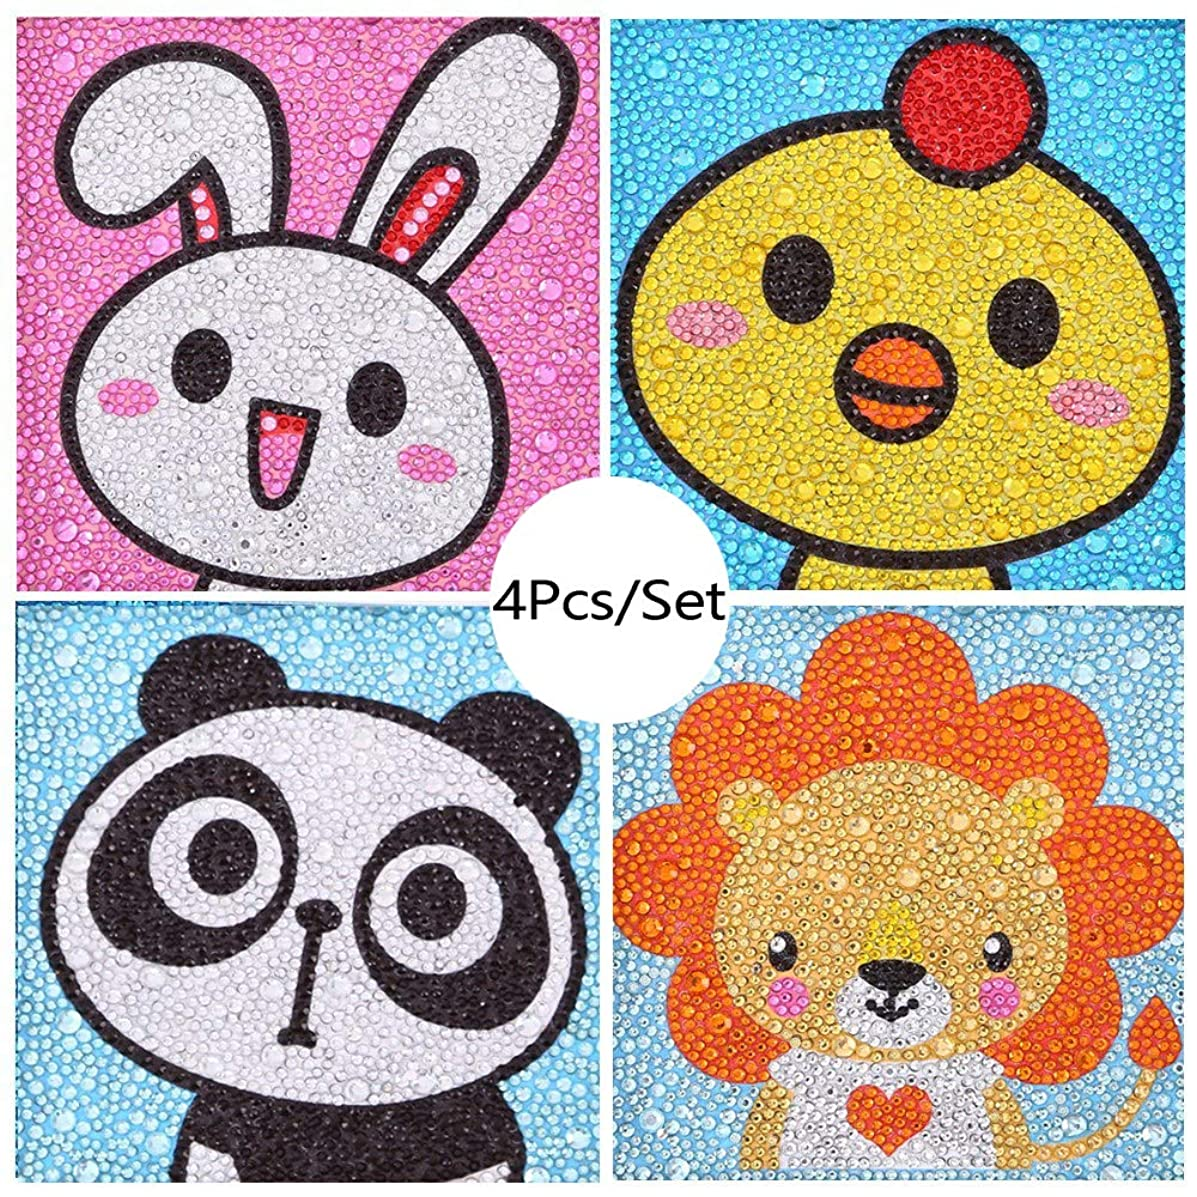 VV&BAOZI Pack of 4 Pieces DIY Special Shaped Diamond Painting Kits for Kids Cartoon Paint by Numbers(Canvas Size 6''×6'')